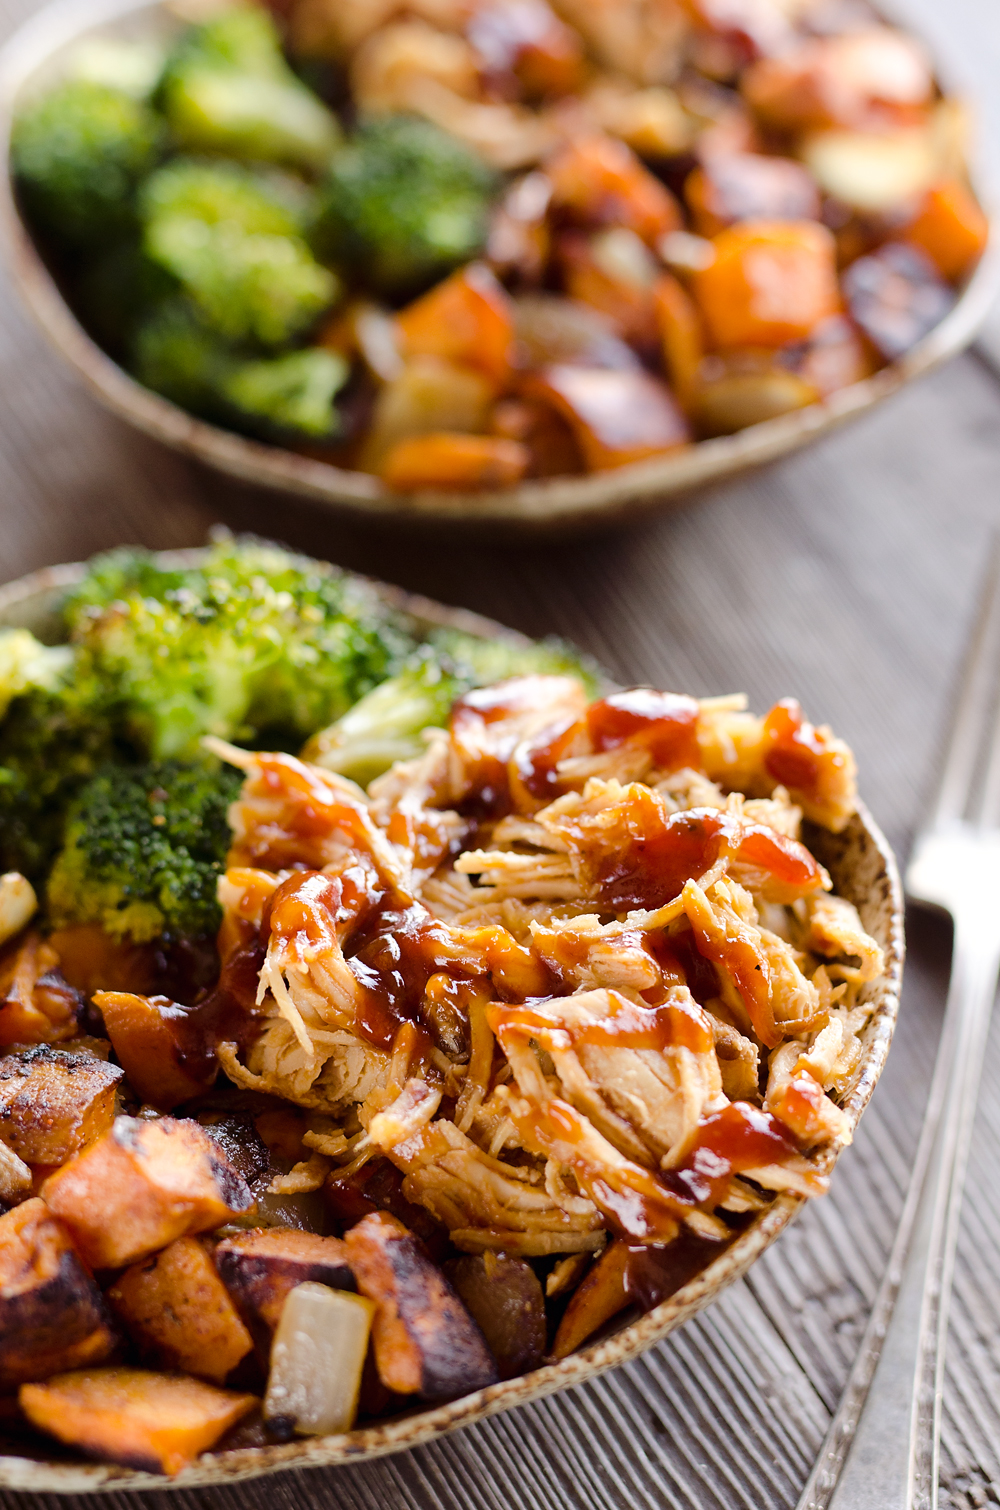 BBQ Chicken, Roasted Sweet Potatoes and Broccoli